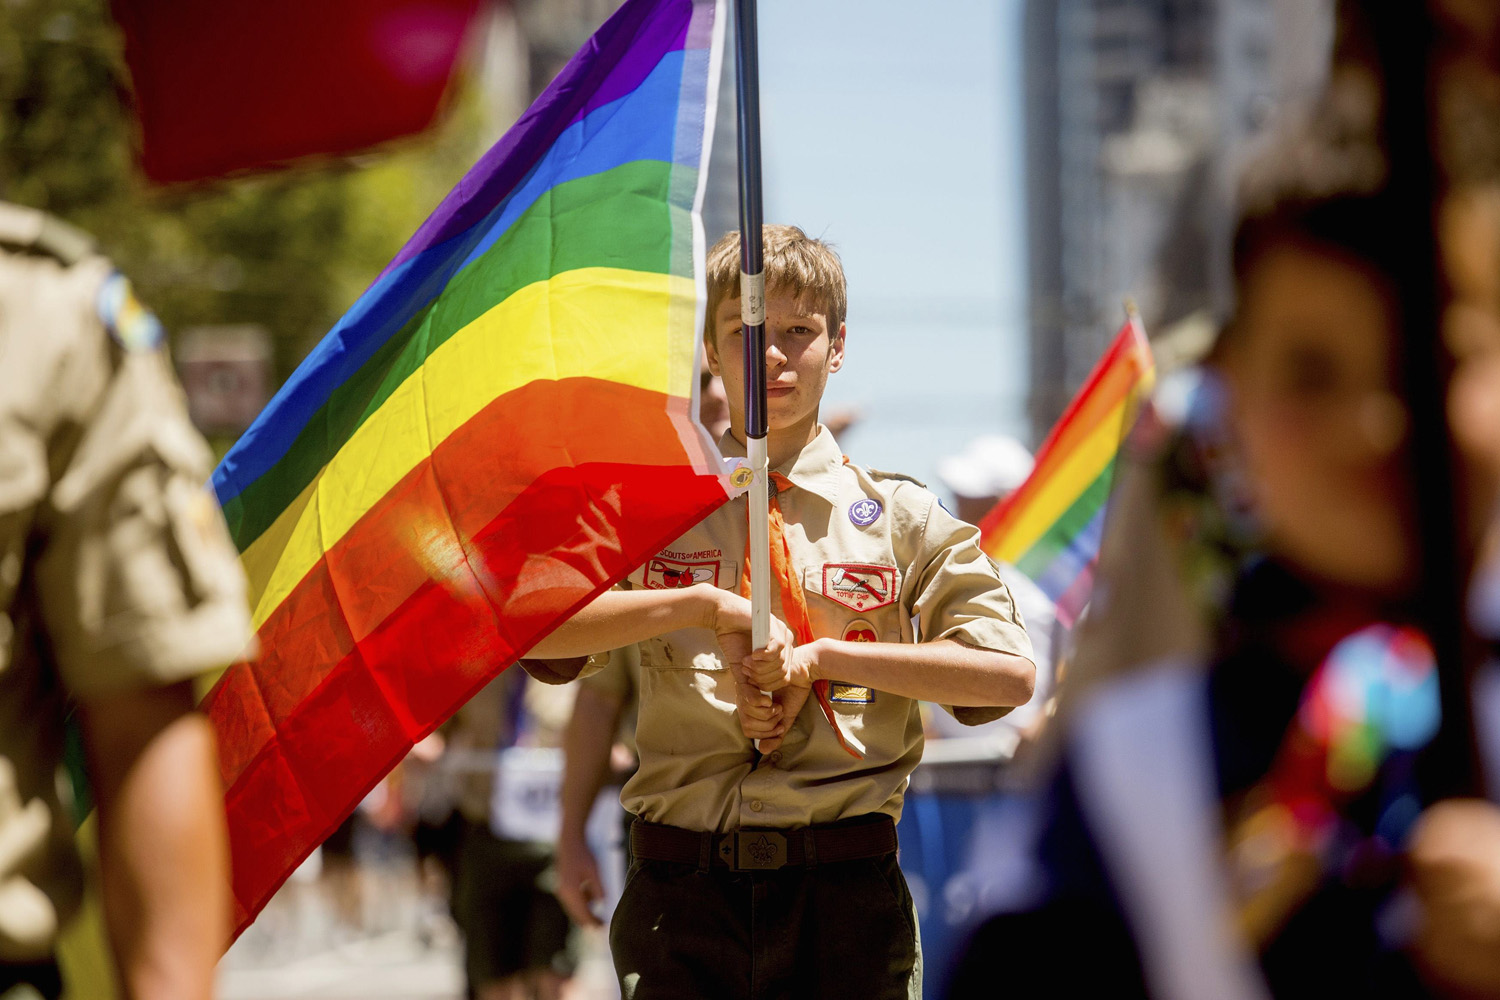 Jun. 29, 2014. Boy Scout Casey Chambers carries a rainbow flag during the San Francisco Gay Pride Festival in California.